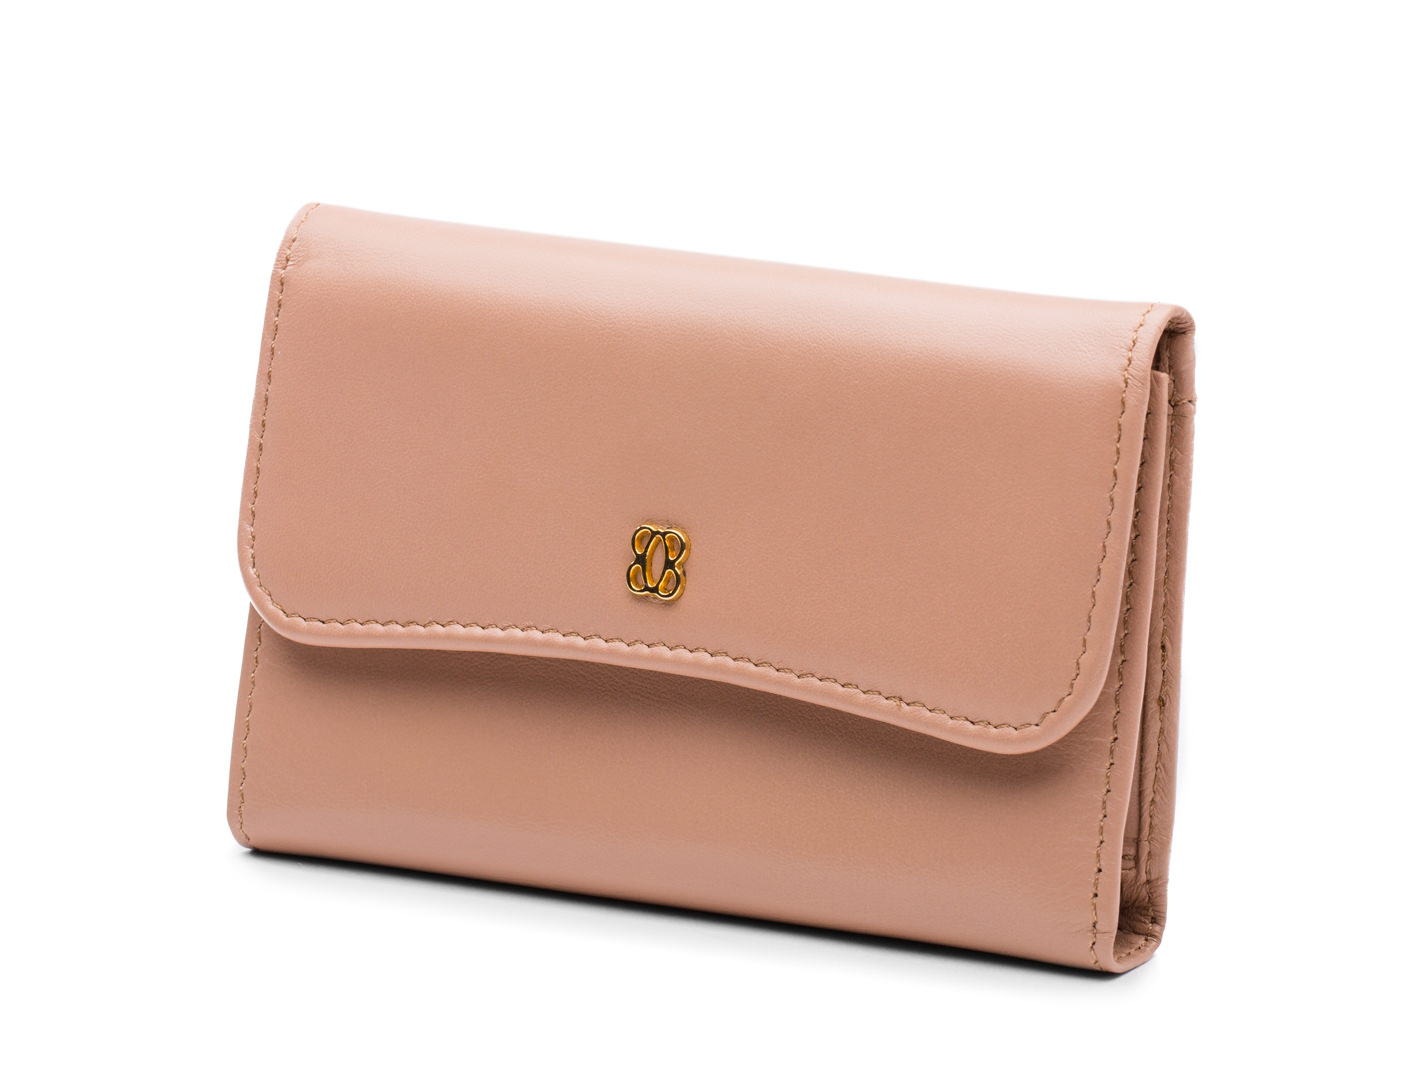 Blush ID French Purse - 213 Blush